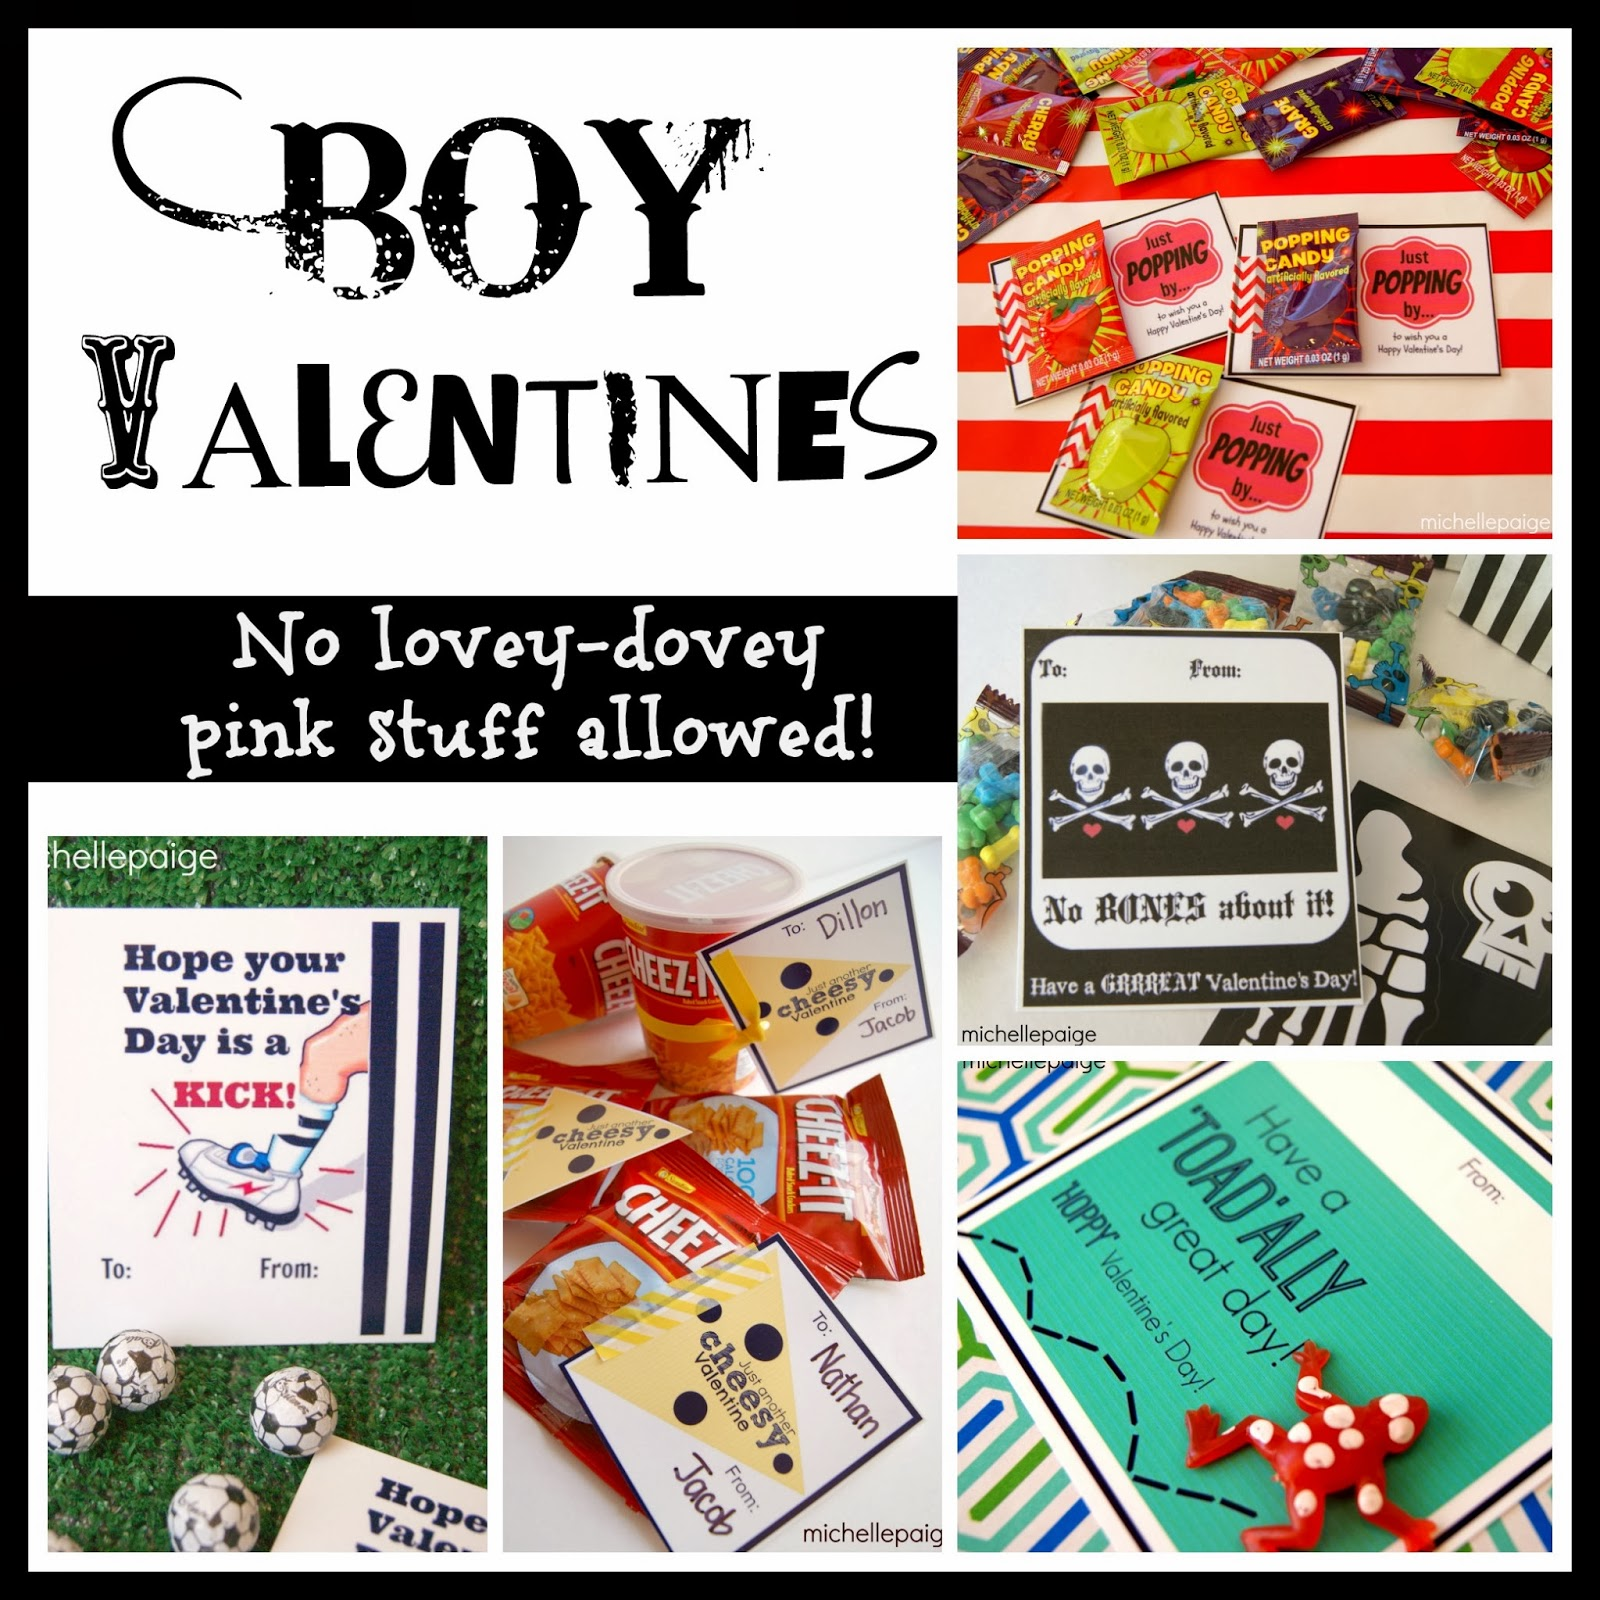 printable boy valentines for an 11 year old - Free Disney Games For 4 Year Olds